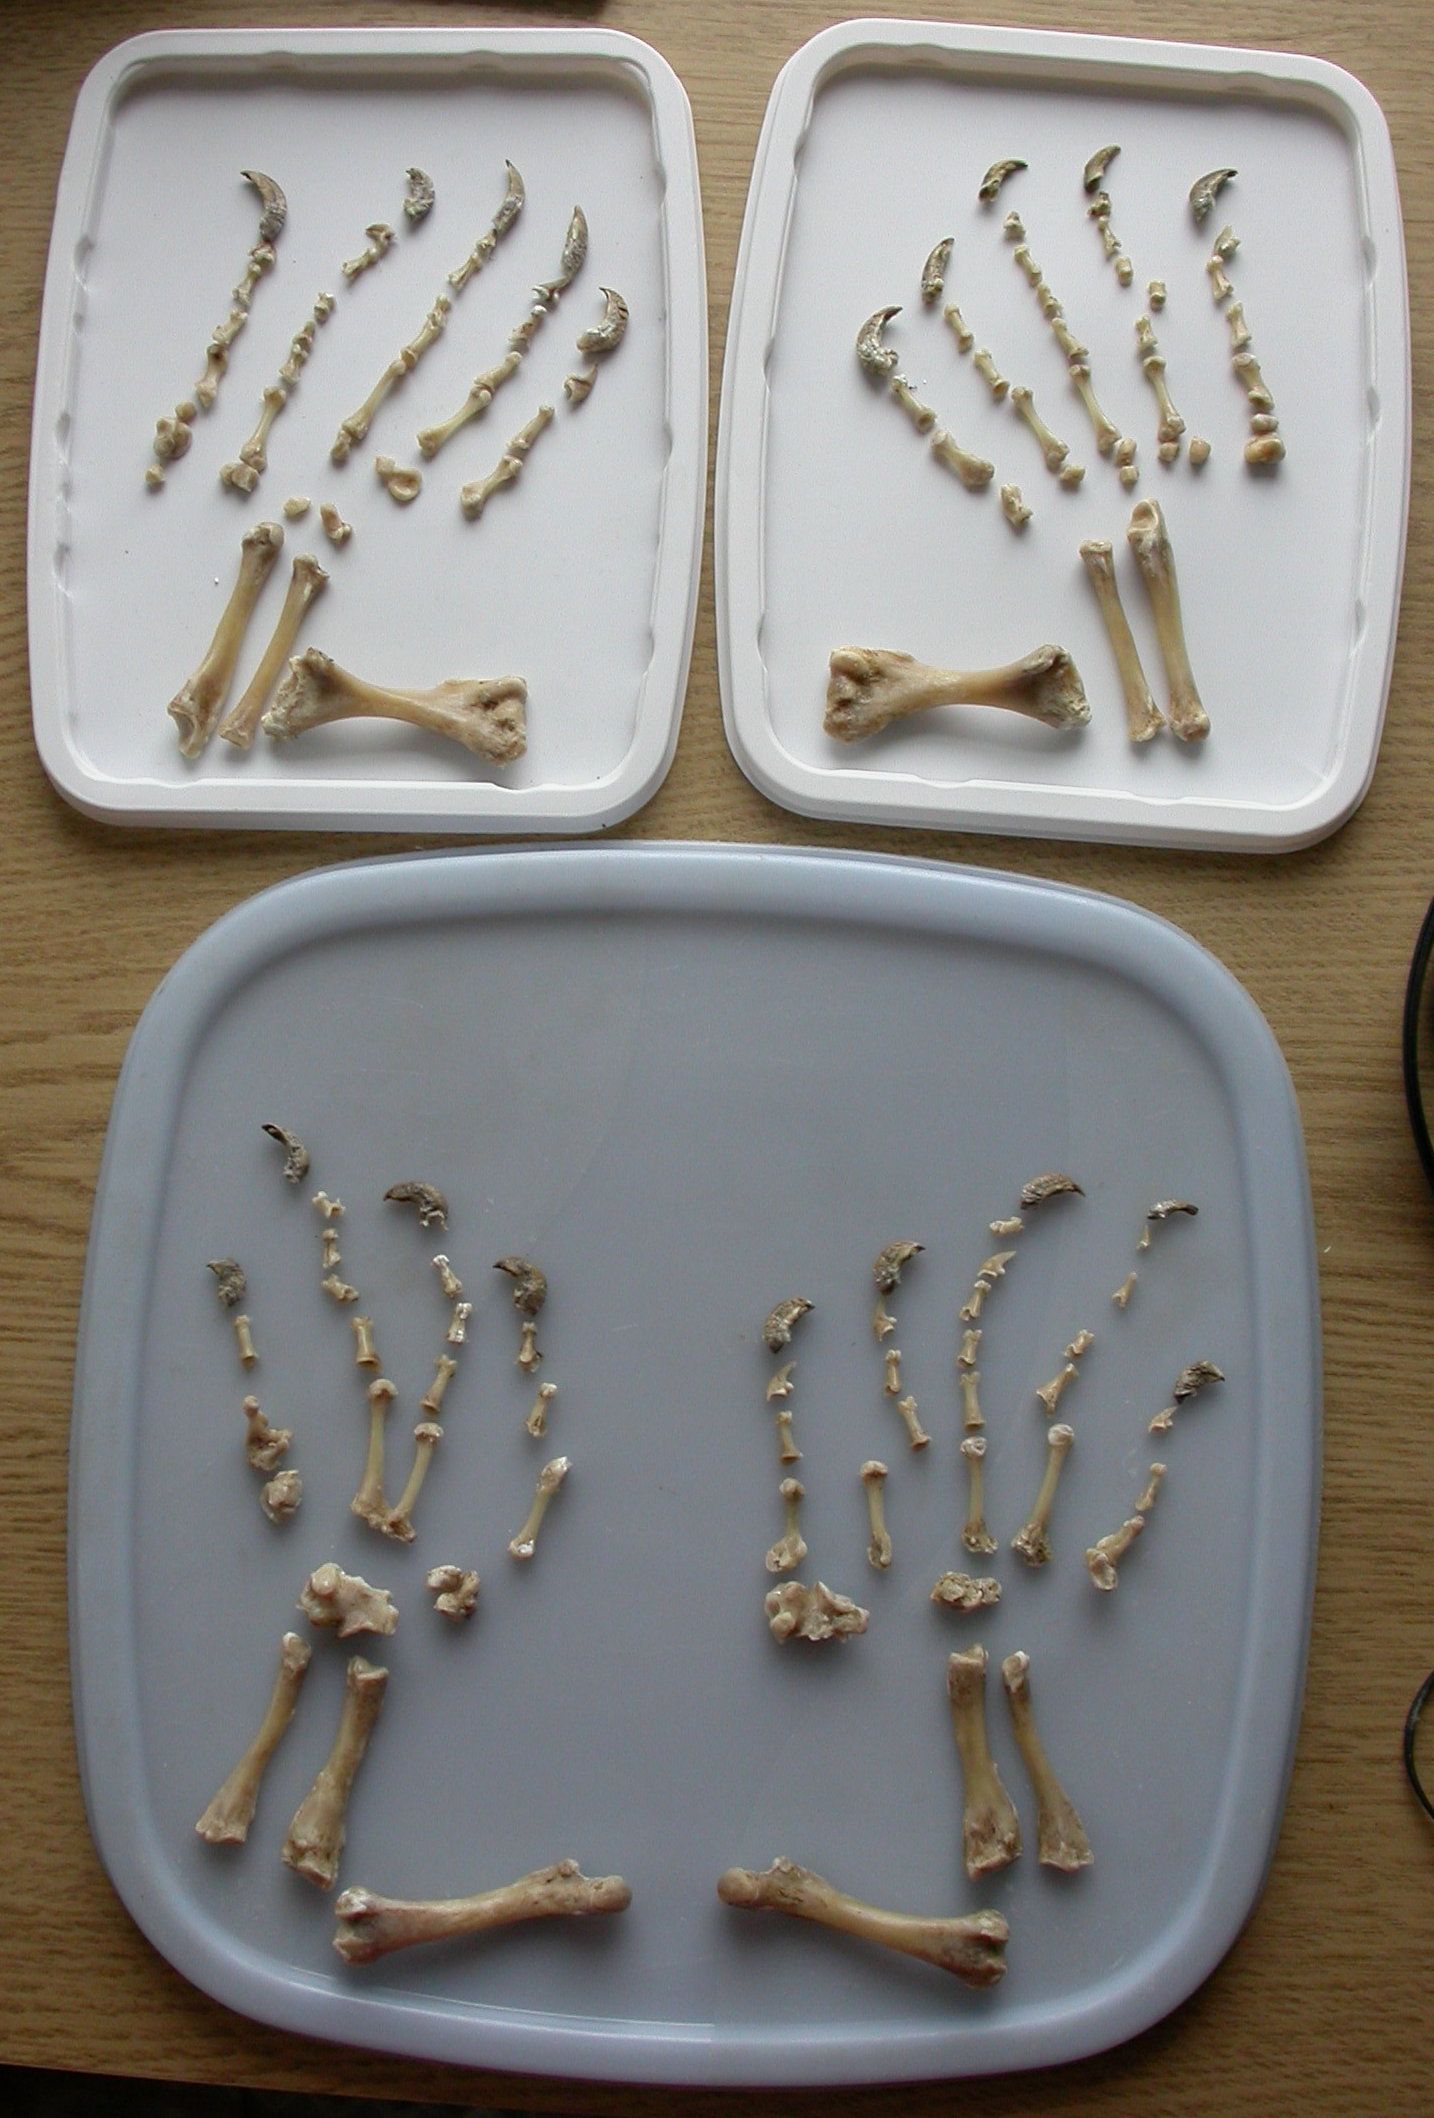 Bird Foot Skeleton